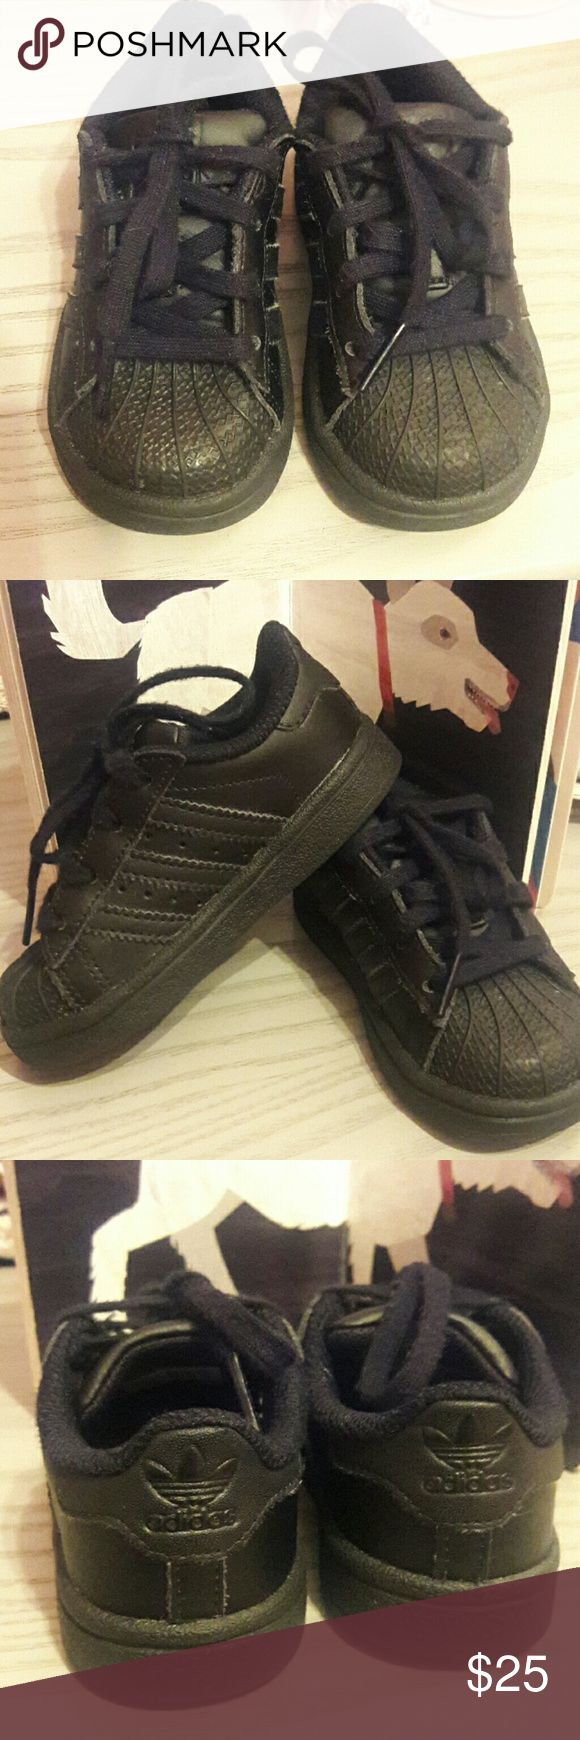 Black Shell toe Adidas Definitely a classic...all black shell toe Adidas in good condition universal shoe can be worn by boys or girls...they seem to run big adidas Shoes Sneakers